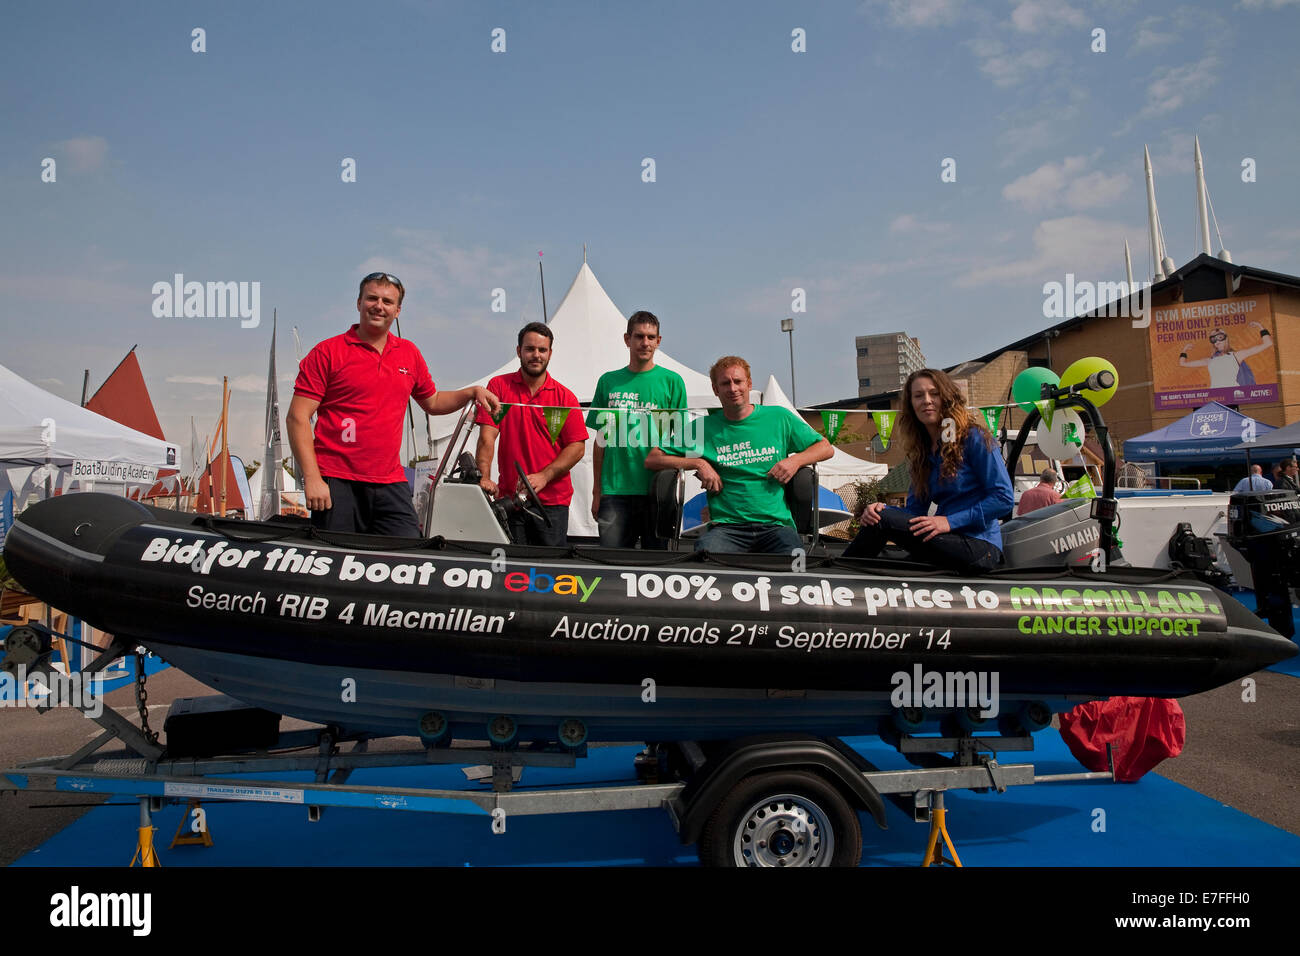 Rib 4 Macmillan Boat Raising Money For Macmillan Cancer Support Its Stock Photo Alamy